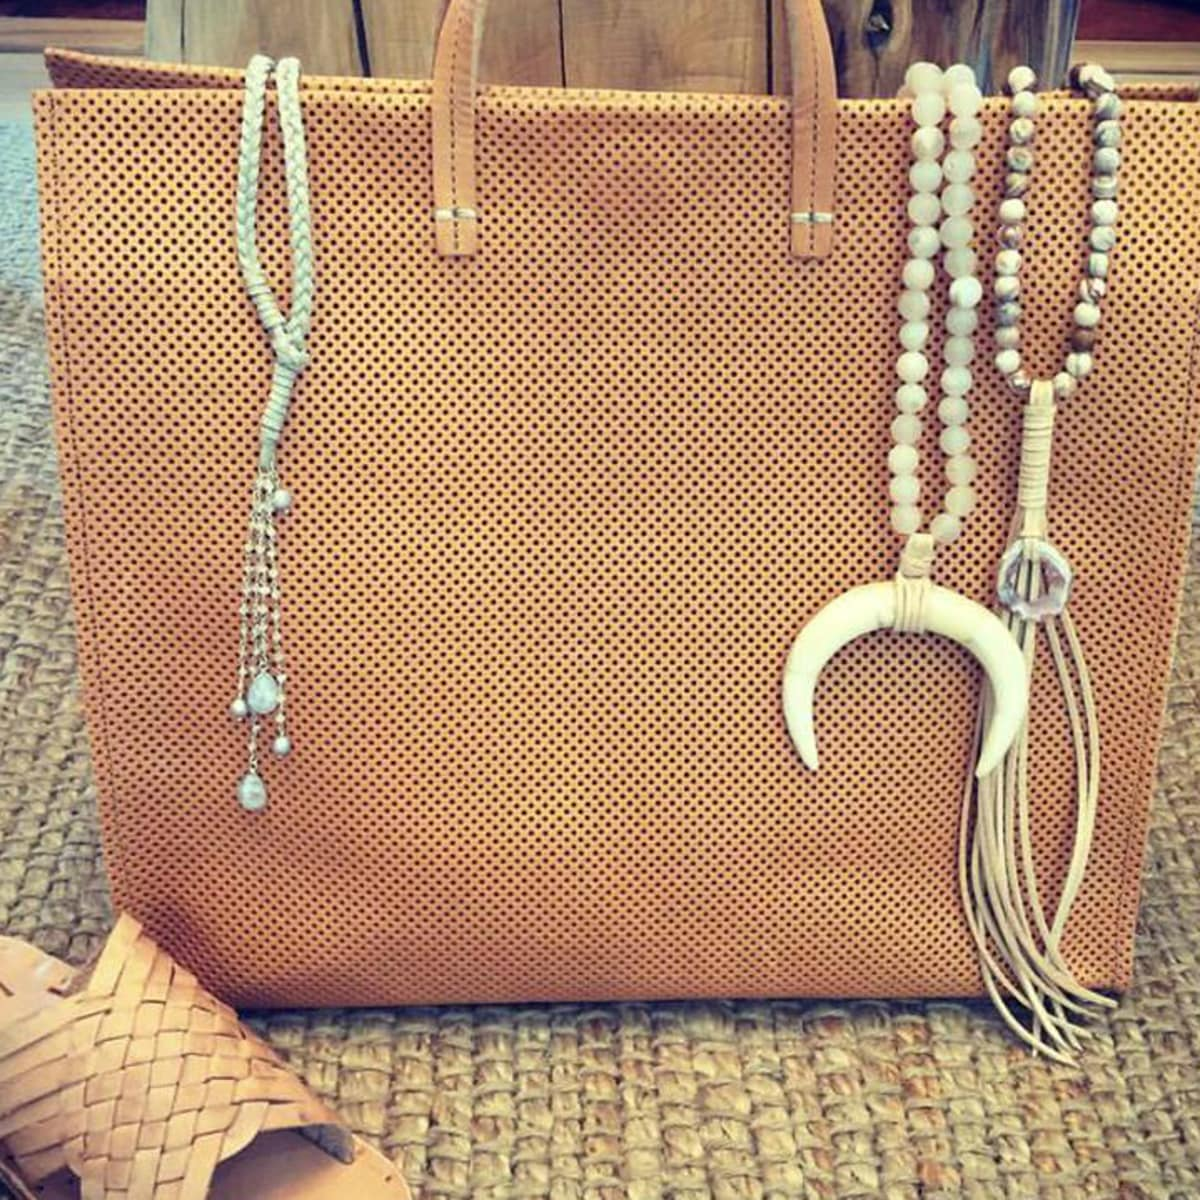 Aquarius Boutique San Antonio shop store bag accessories